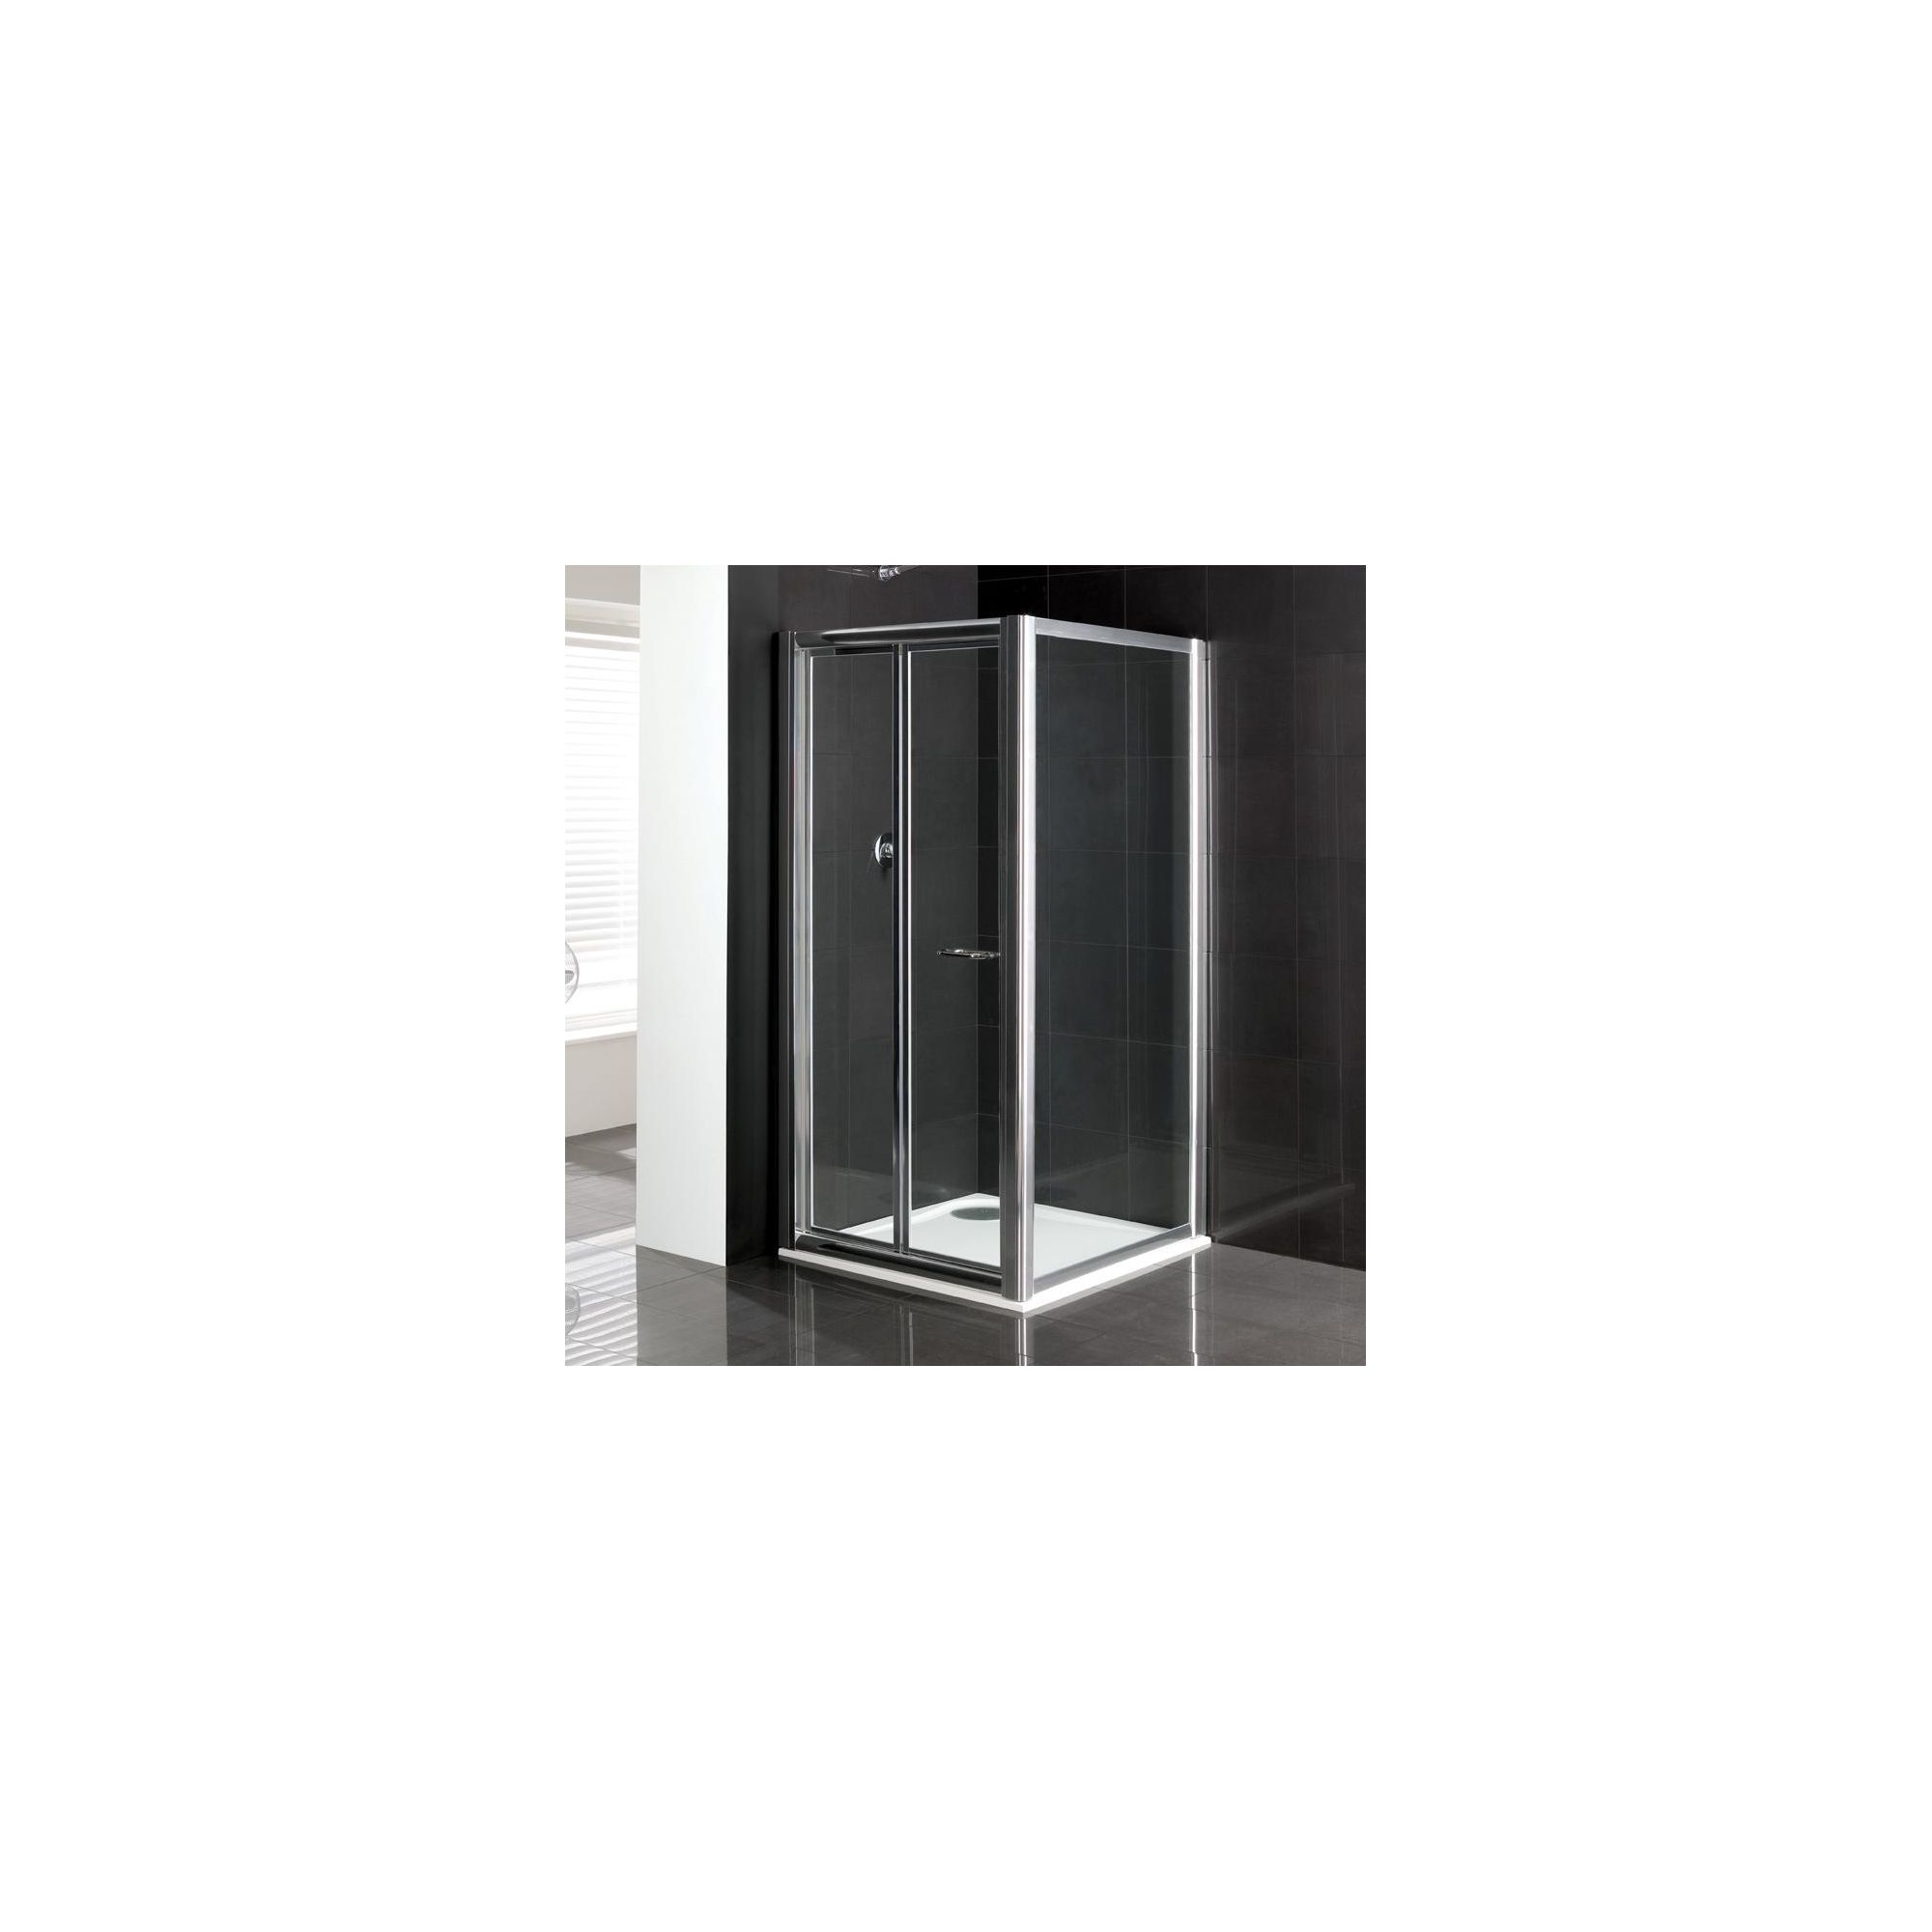 Duchy Elite Silver Bi-Fold Door Shower Enclosure, 760mm x 760mm, Standard Tray, 6mm Glass at Tesco Direct